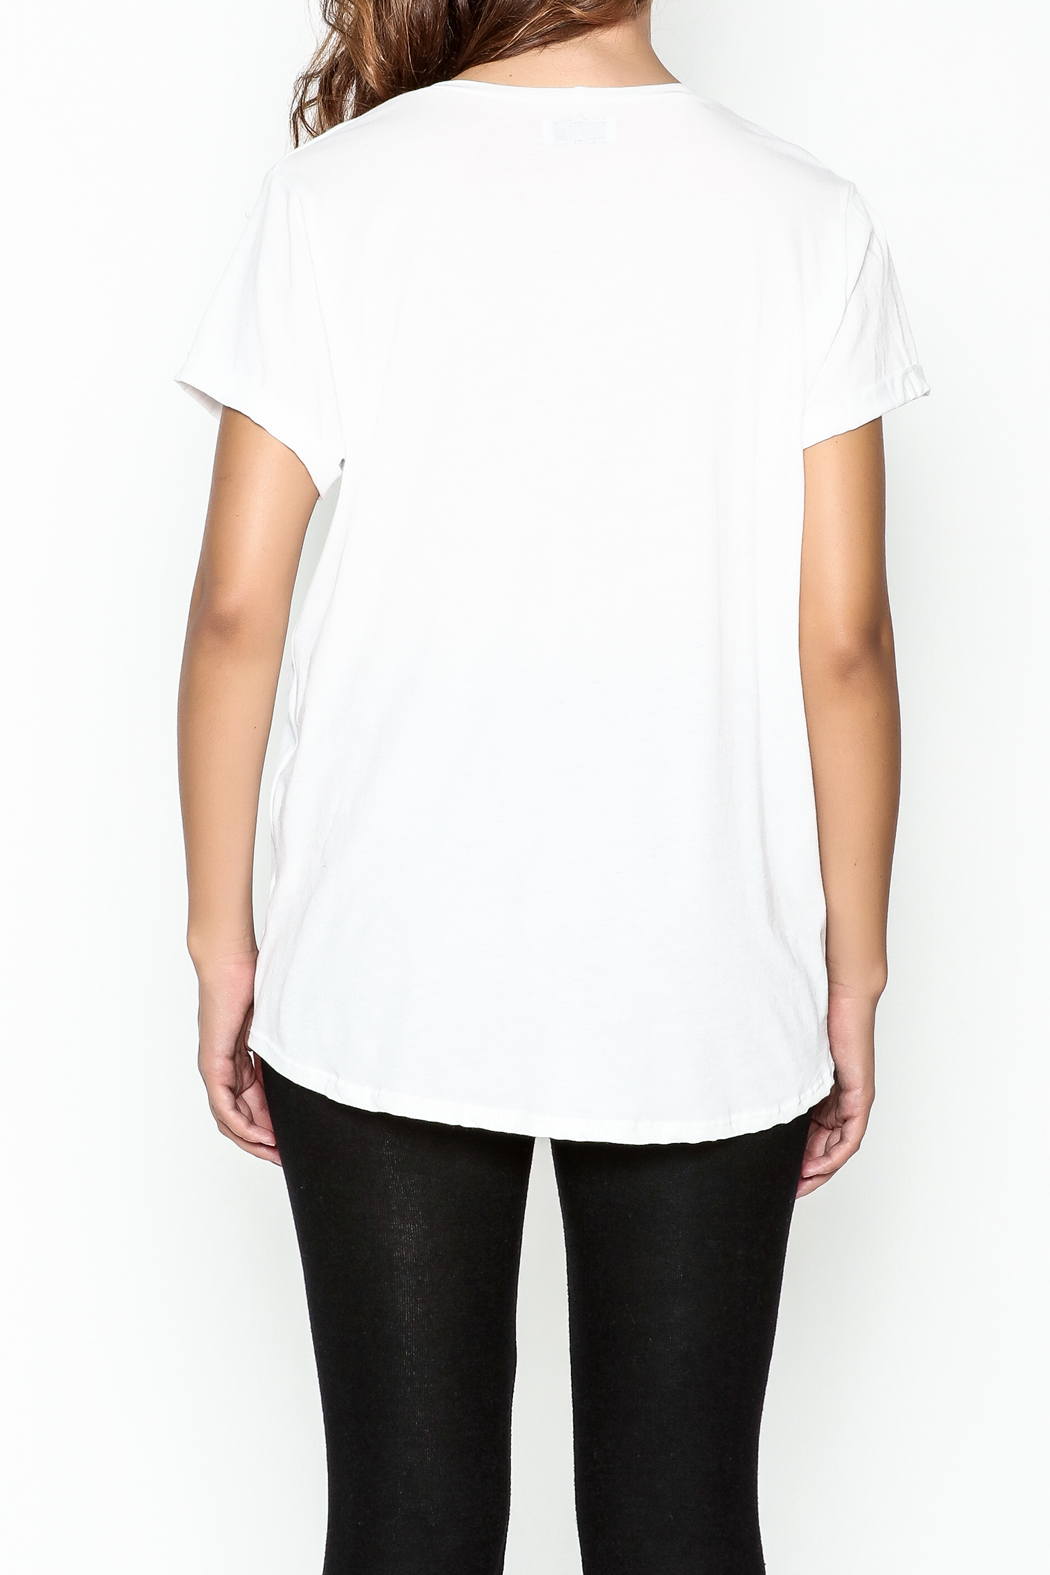 Lauren Moshi Peace Sign Pocket Tee - Back Cropped Image